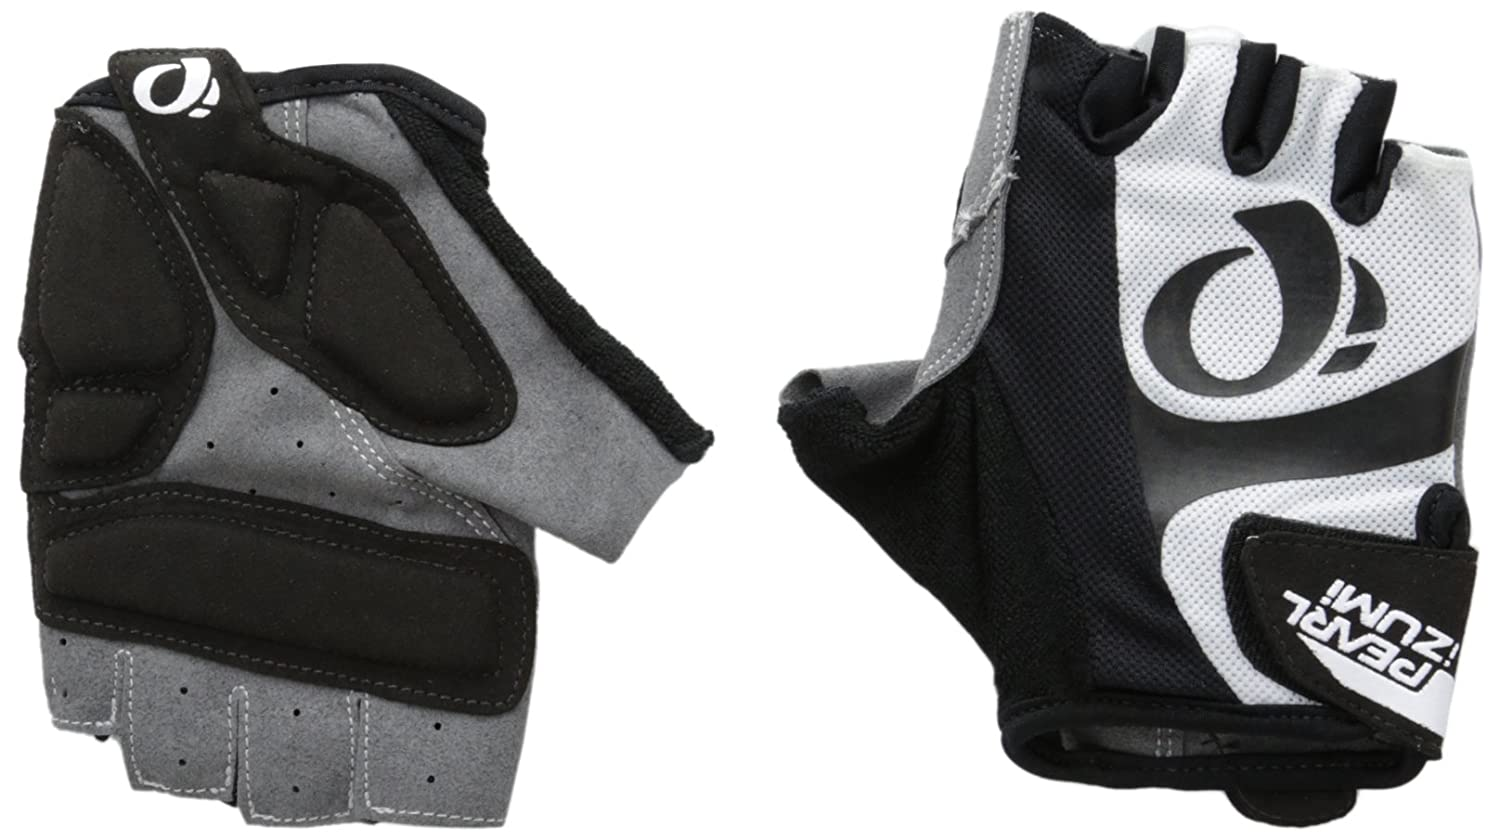 Motorcycle gloves to prevent numbness - Amazon Com Pearl Izumi Men S Select Glove Cycling Gloves Sports Outdoors